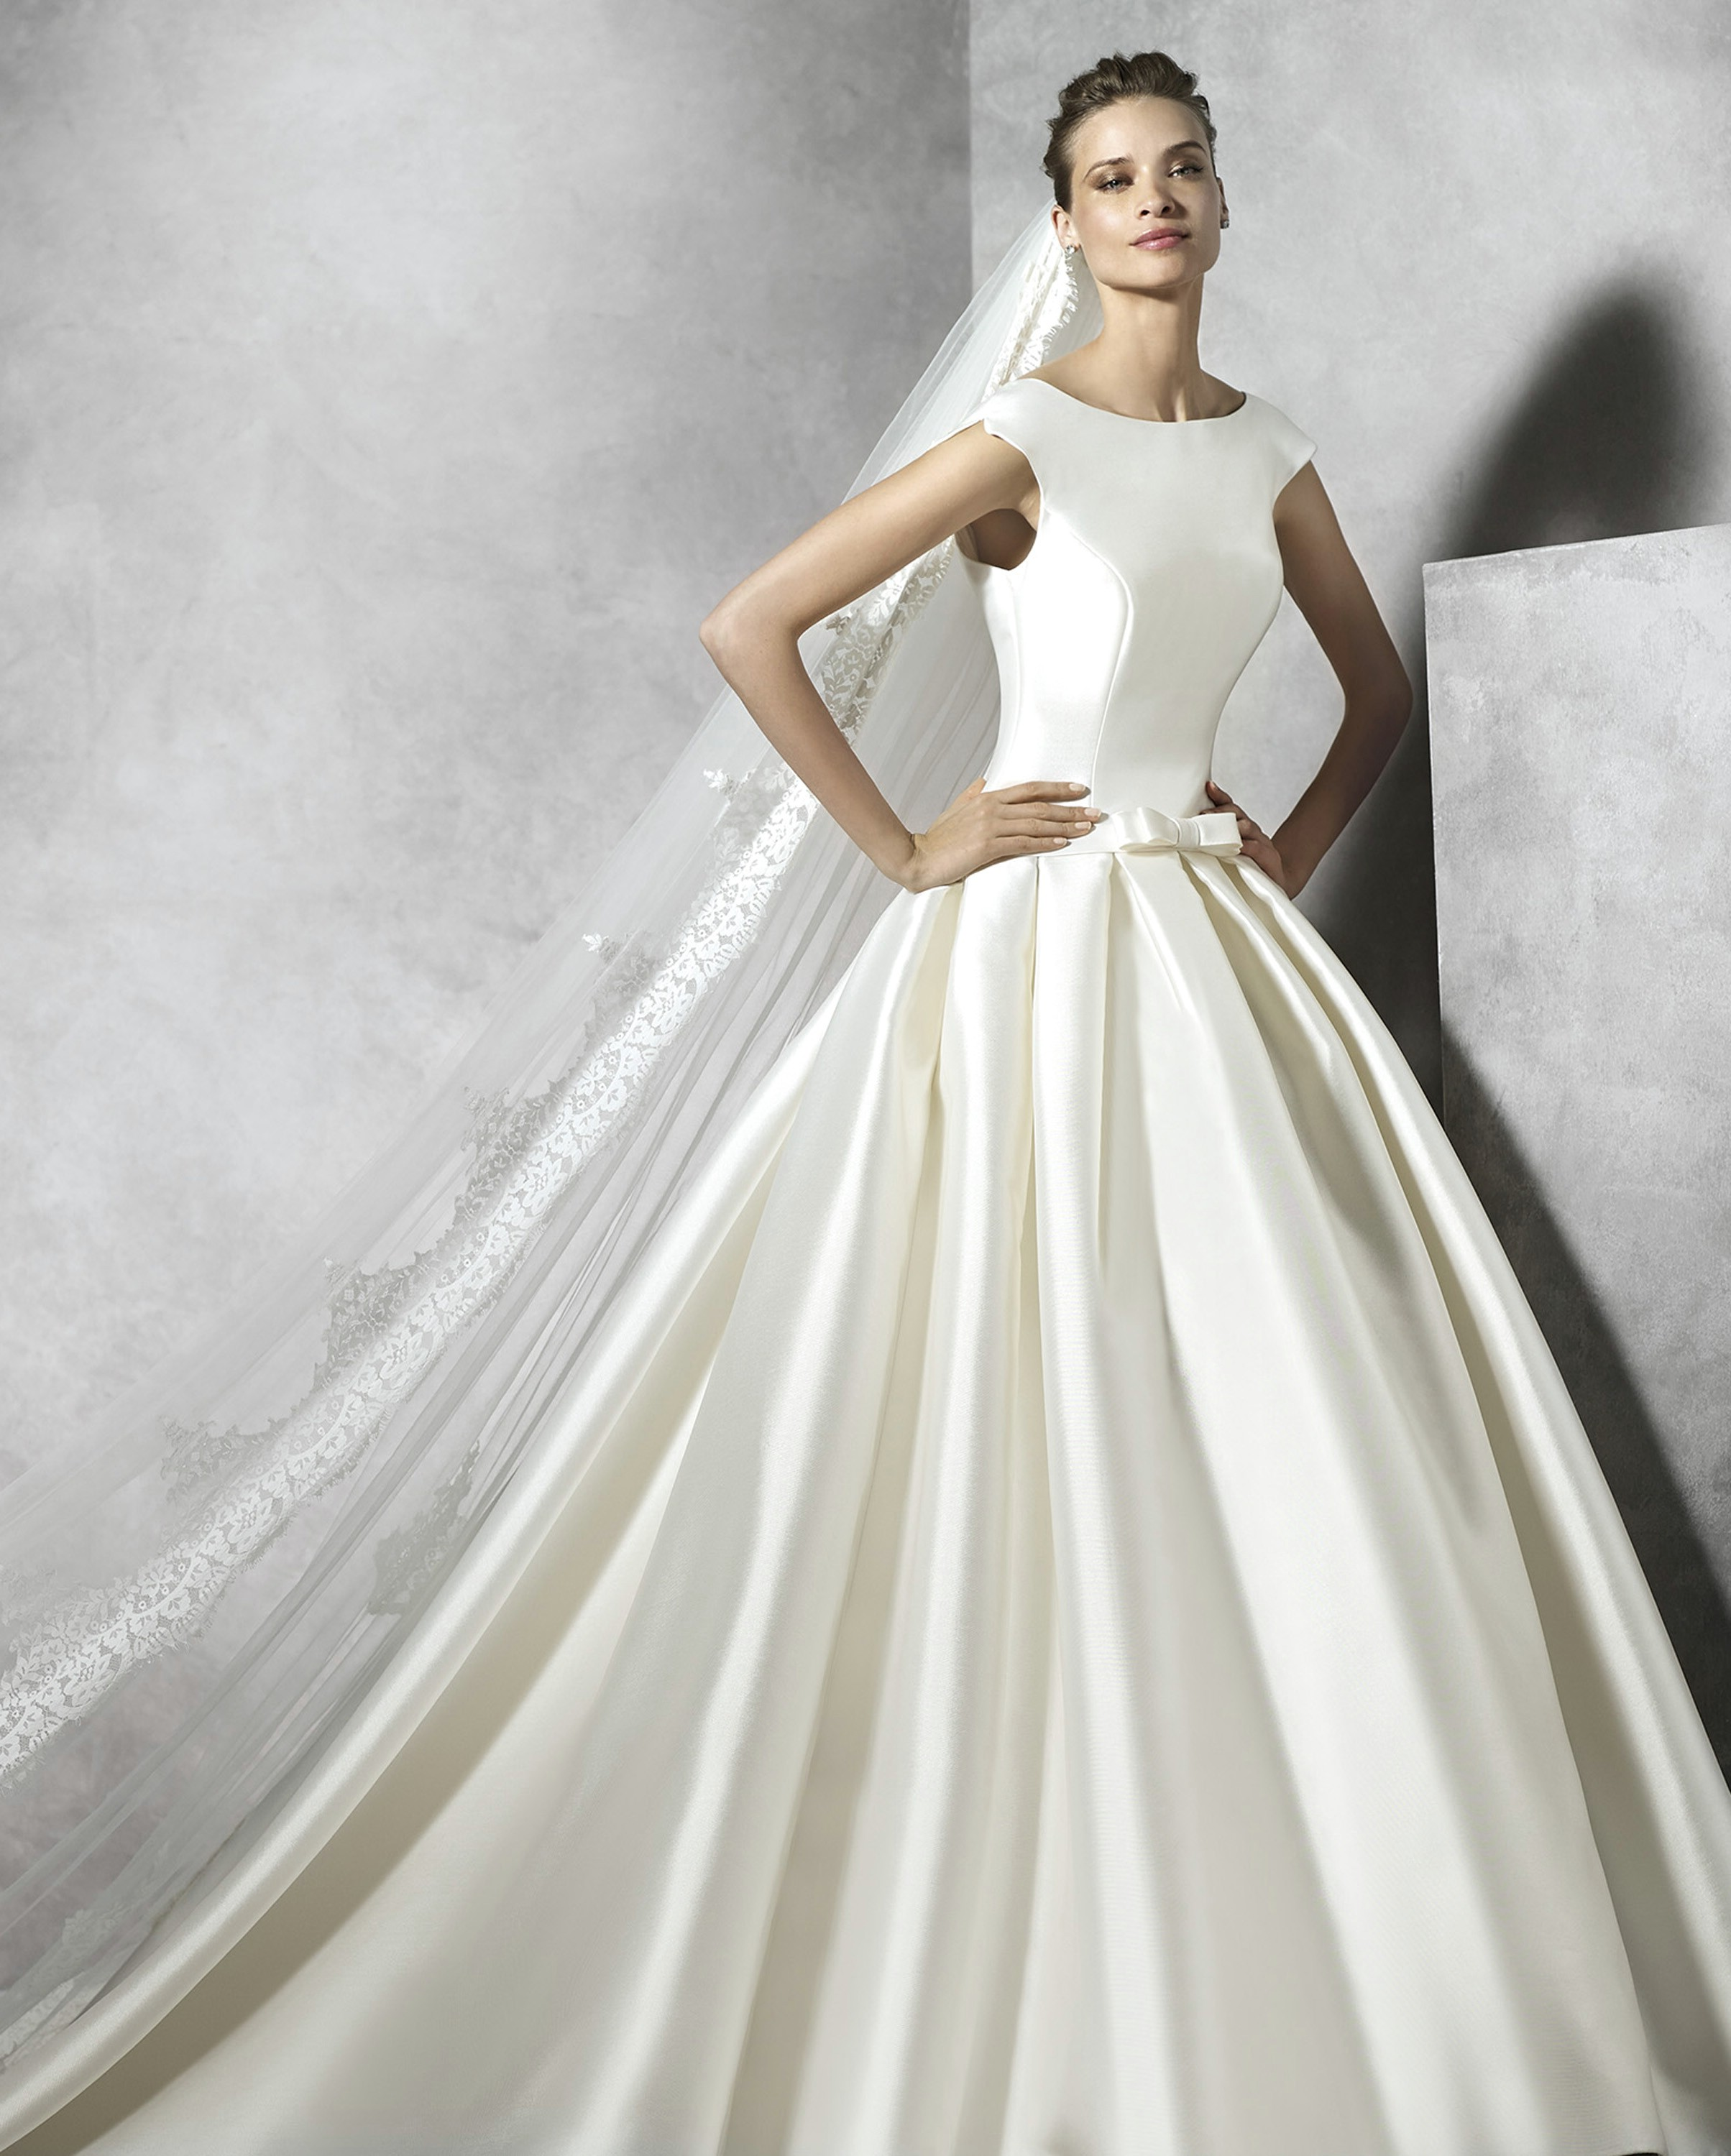 19798794940 New Pronovias Dresses Added to Website - Mia Sposa Bridal Boutique